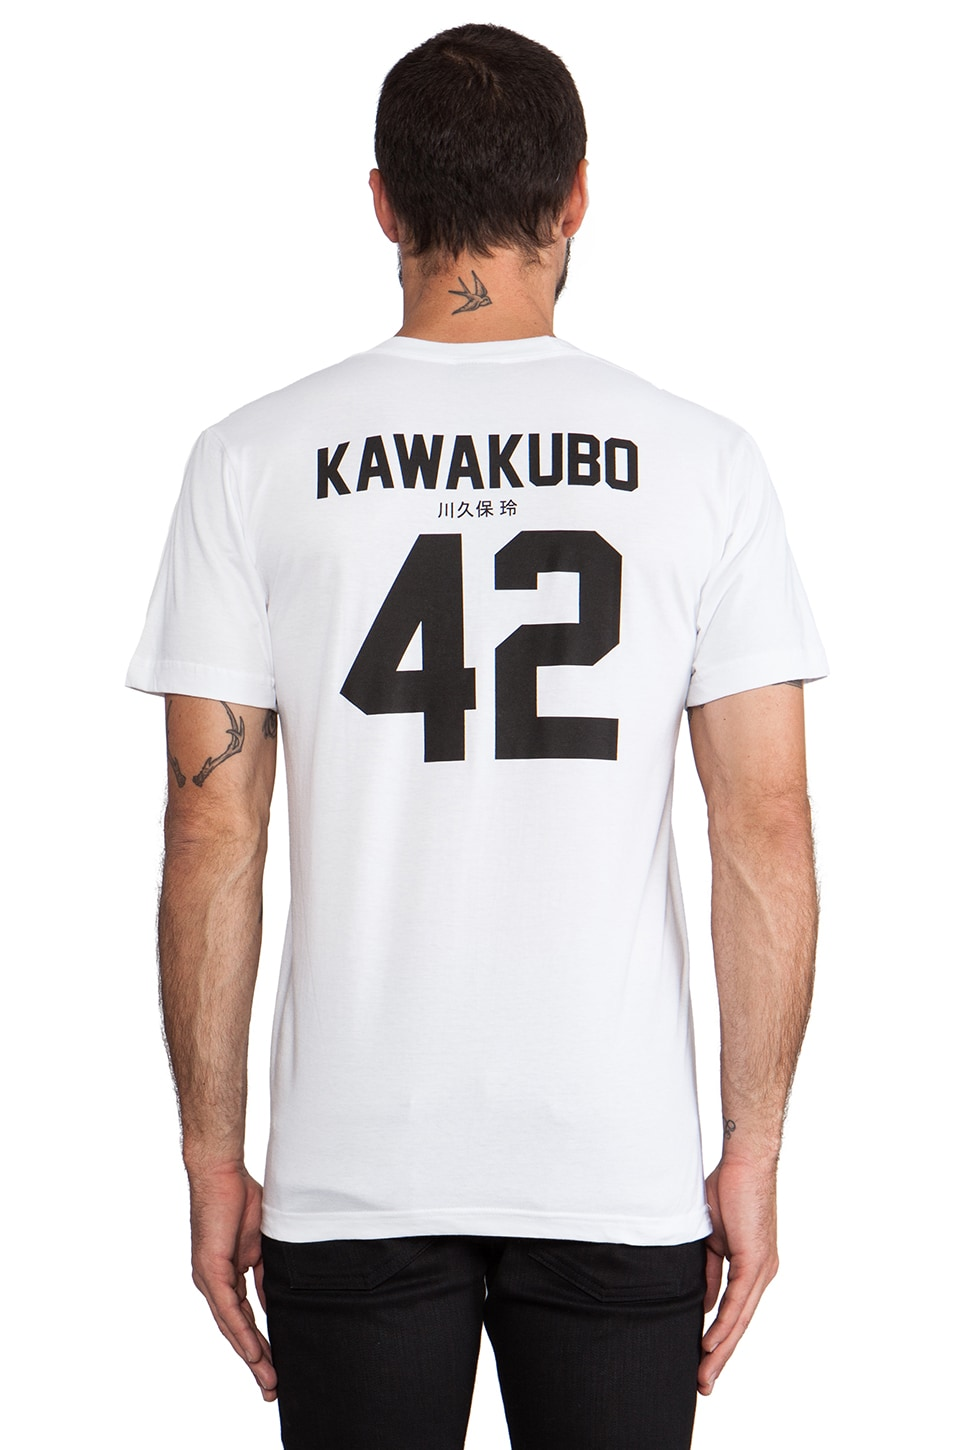 LPD New York Kawakubo Tee with Black Print in White